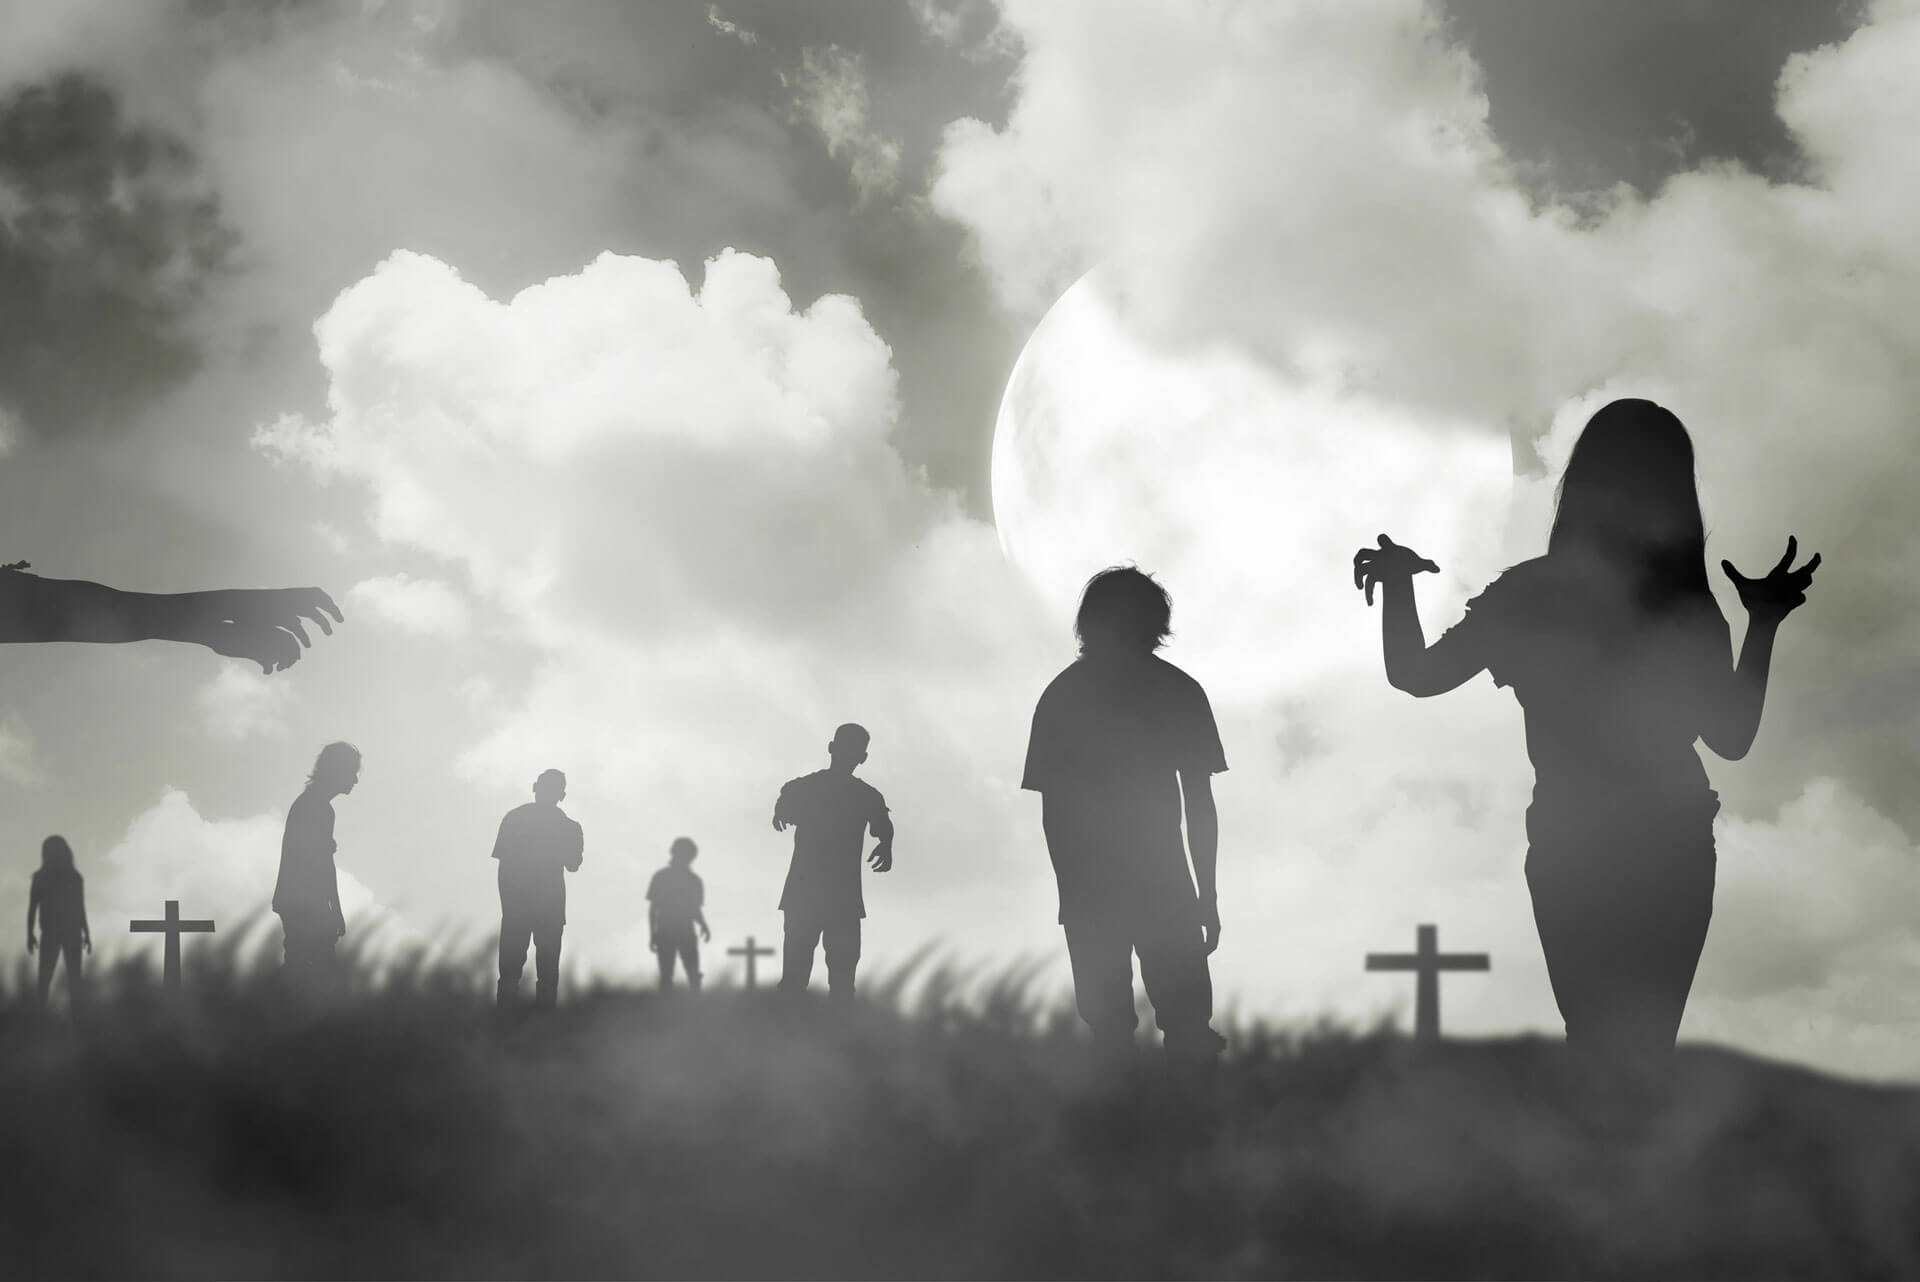 Sleepwalking: Facts About This Zombie-Like State